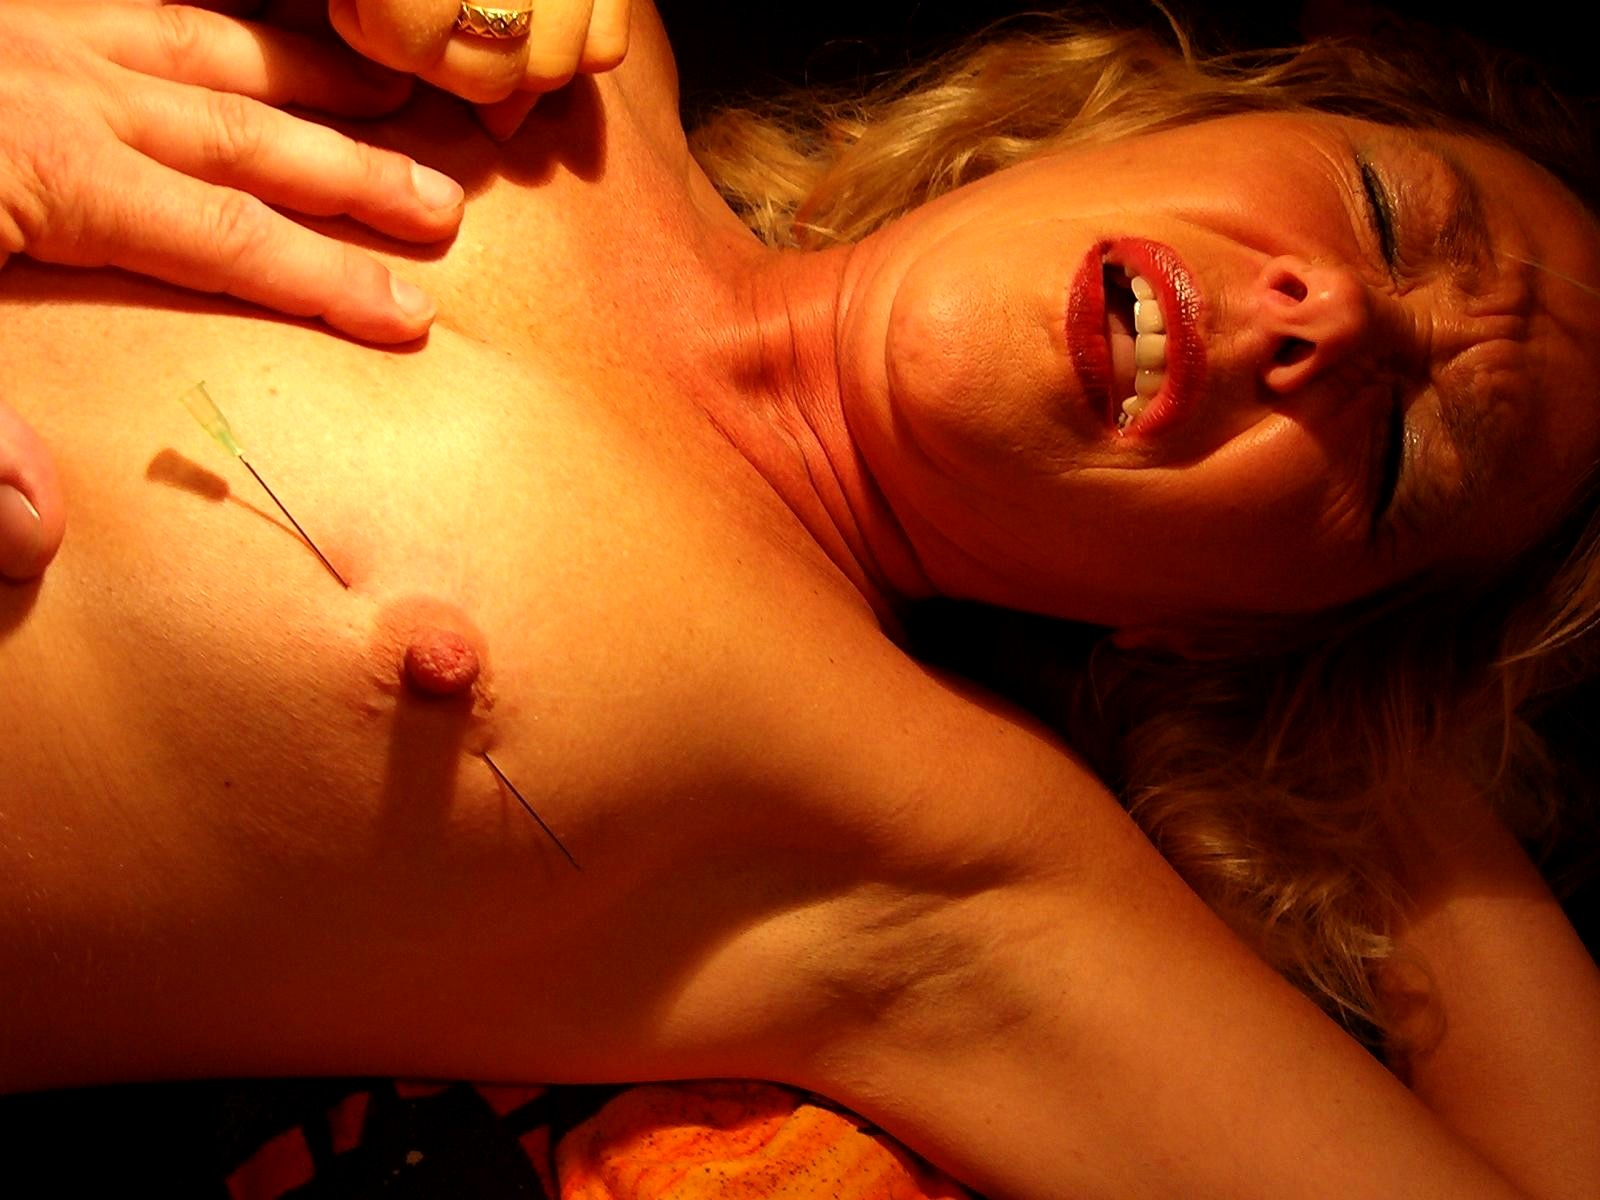 Small tit needle torture